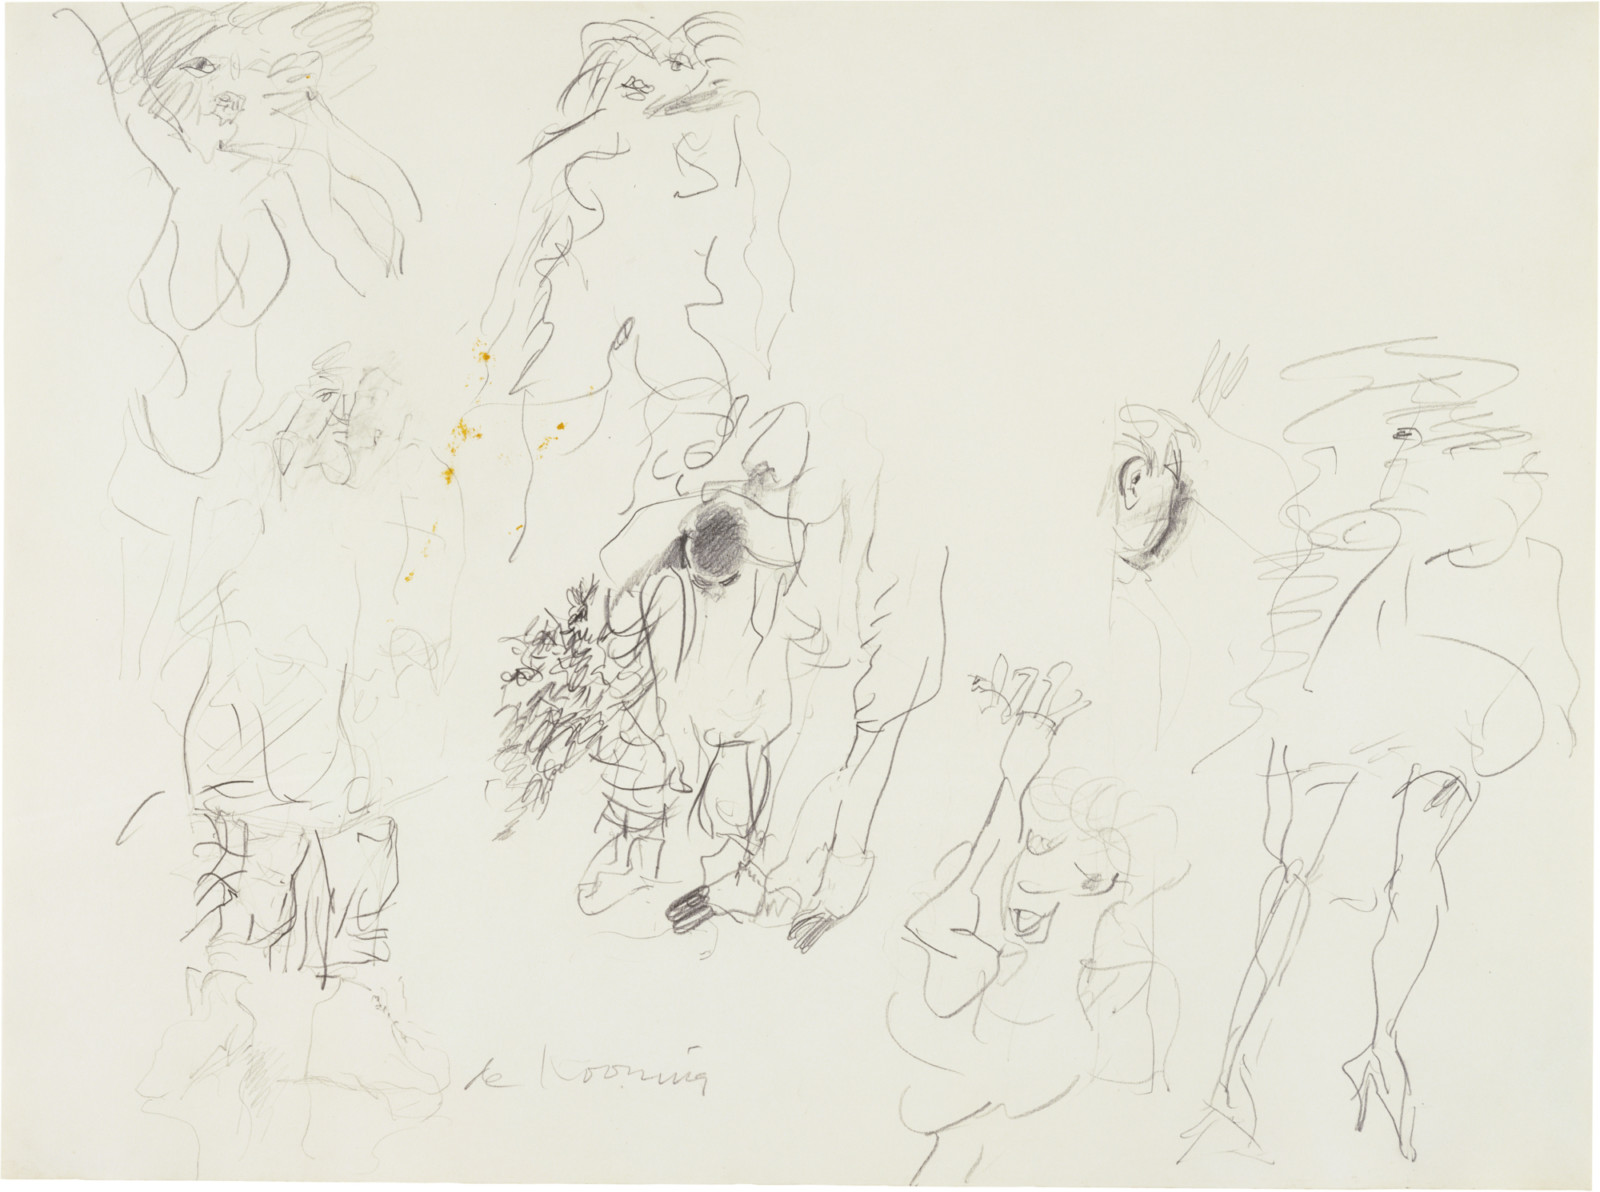 Drawing, dated 1969